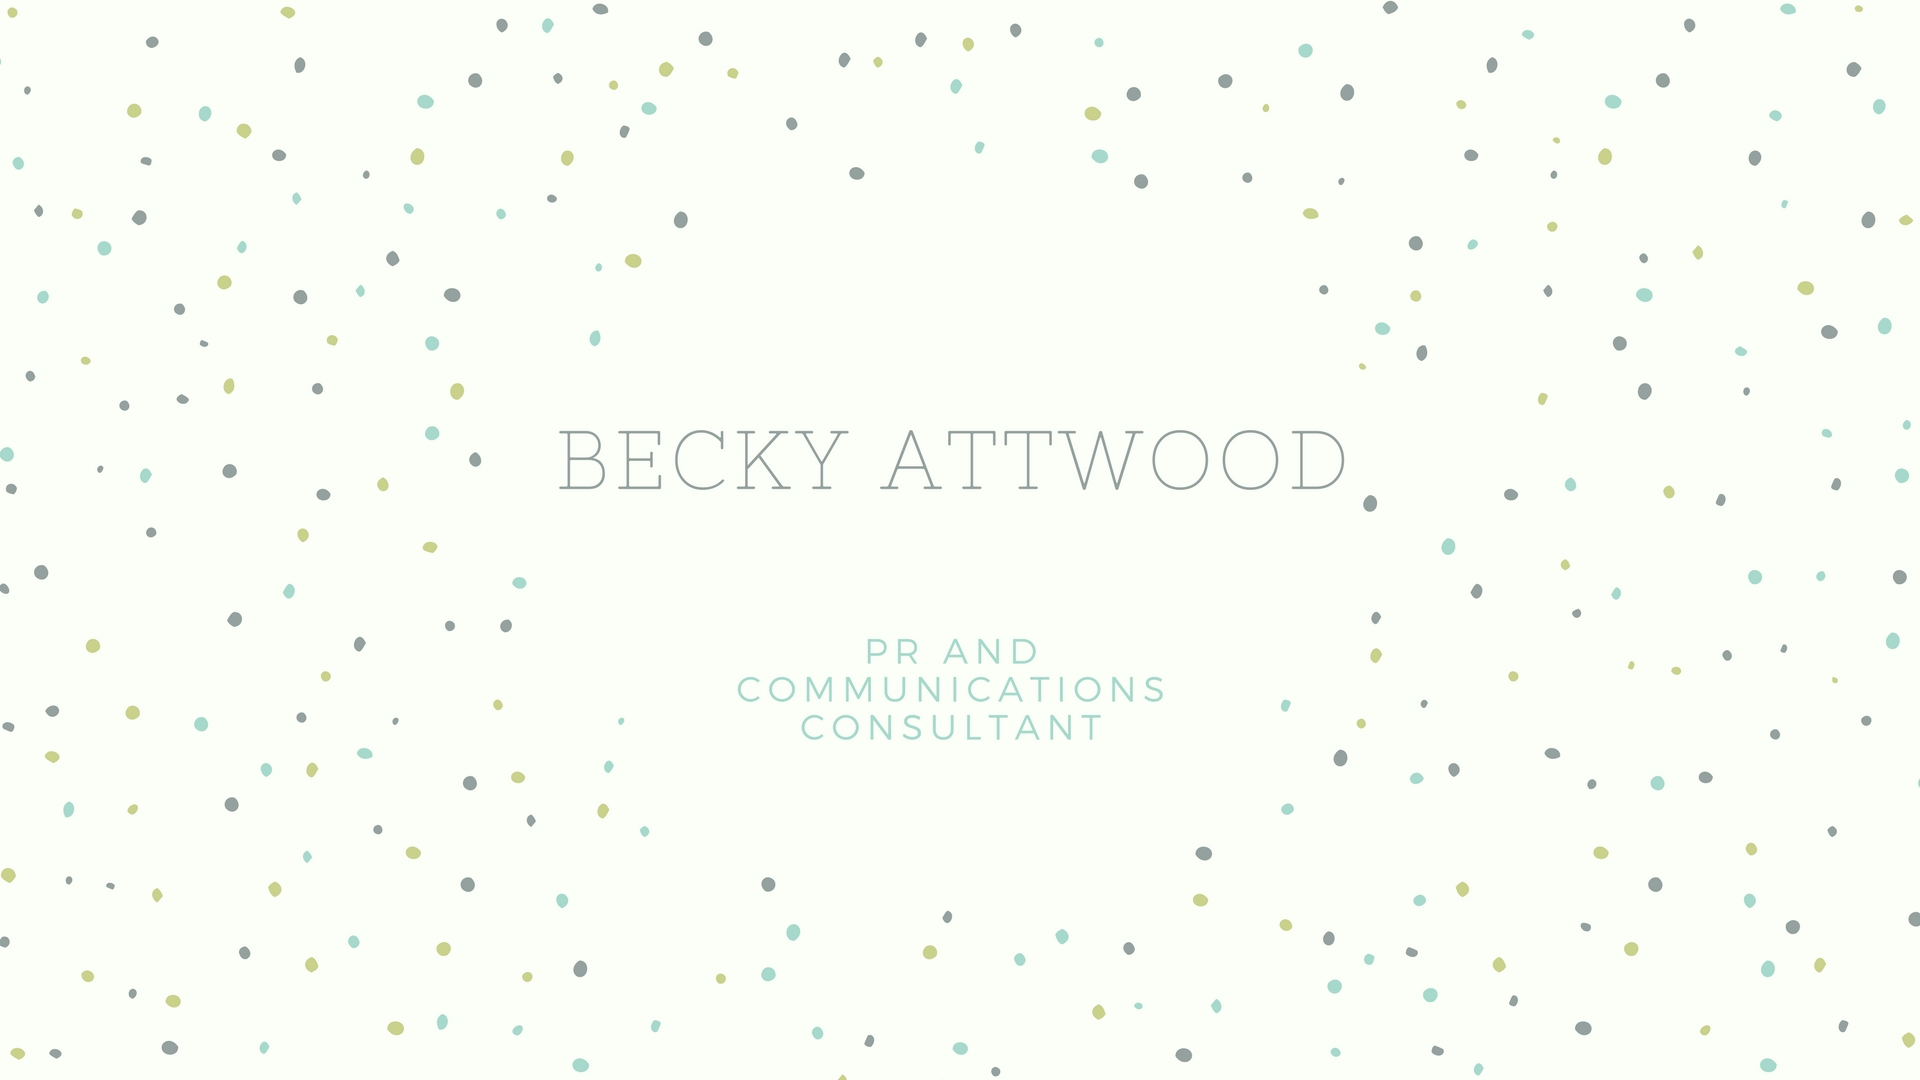 Becky Attwood is a PR and communications consultant based in Hampshire, who can create exciting and engaging marketing material to make your brand stand out from the crowd.